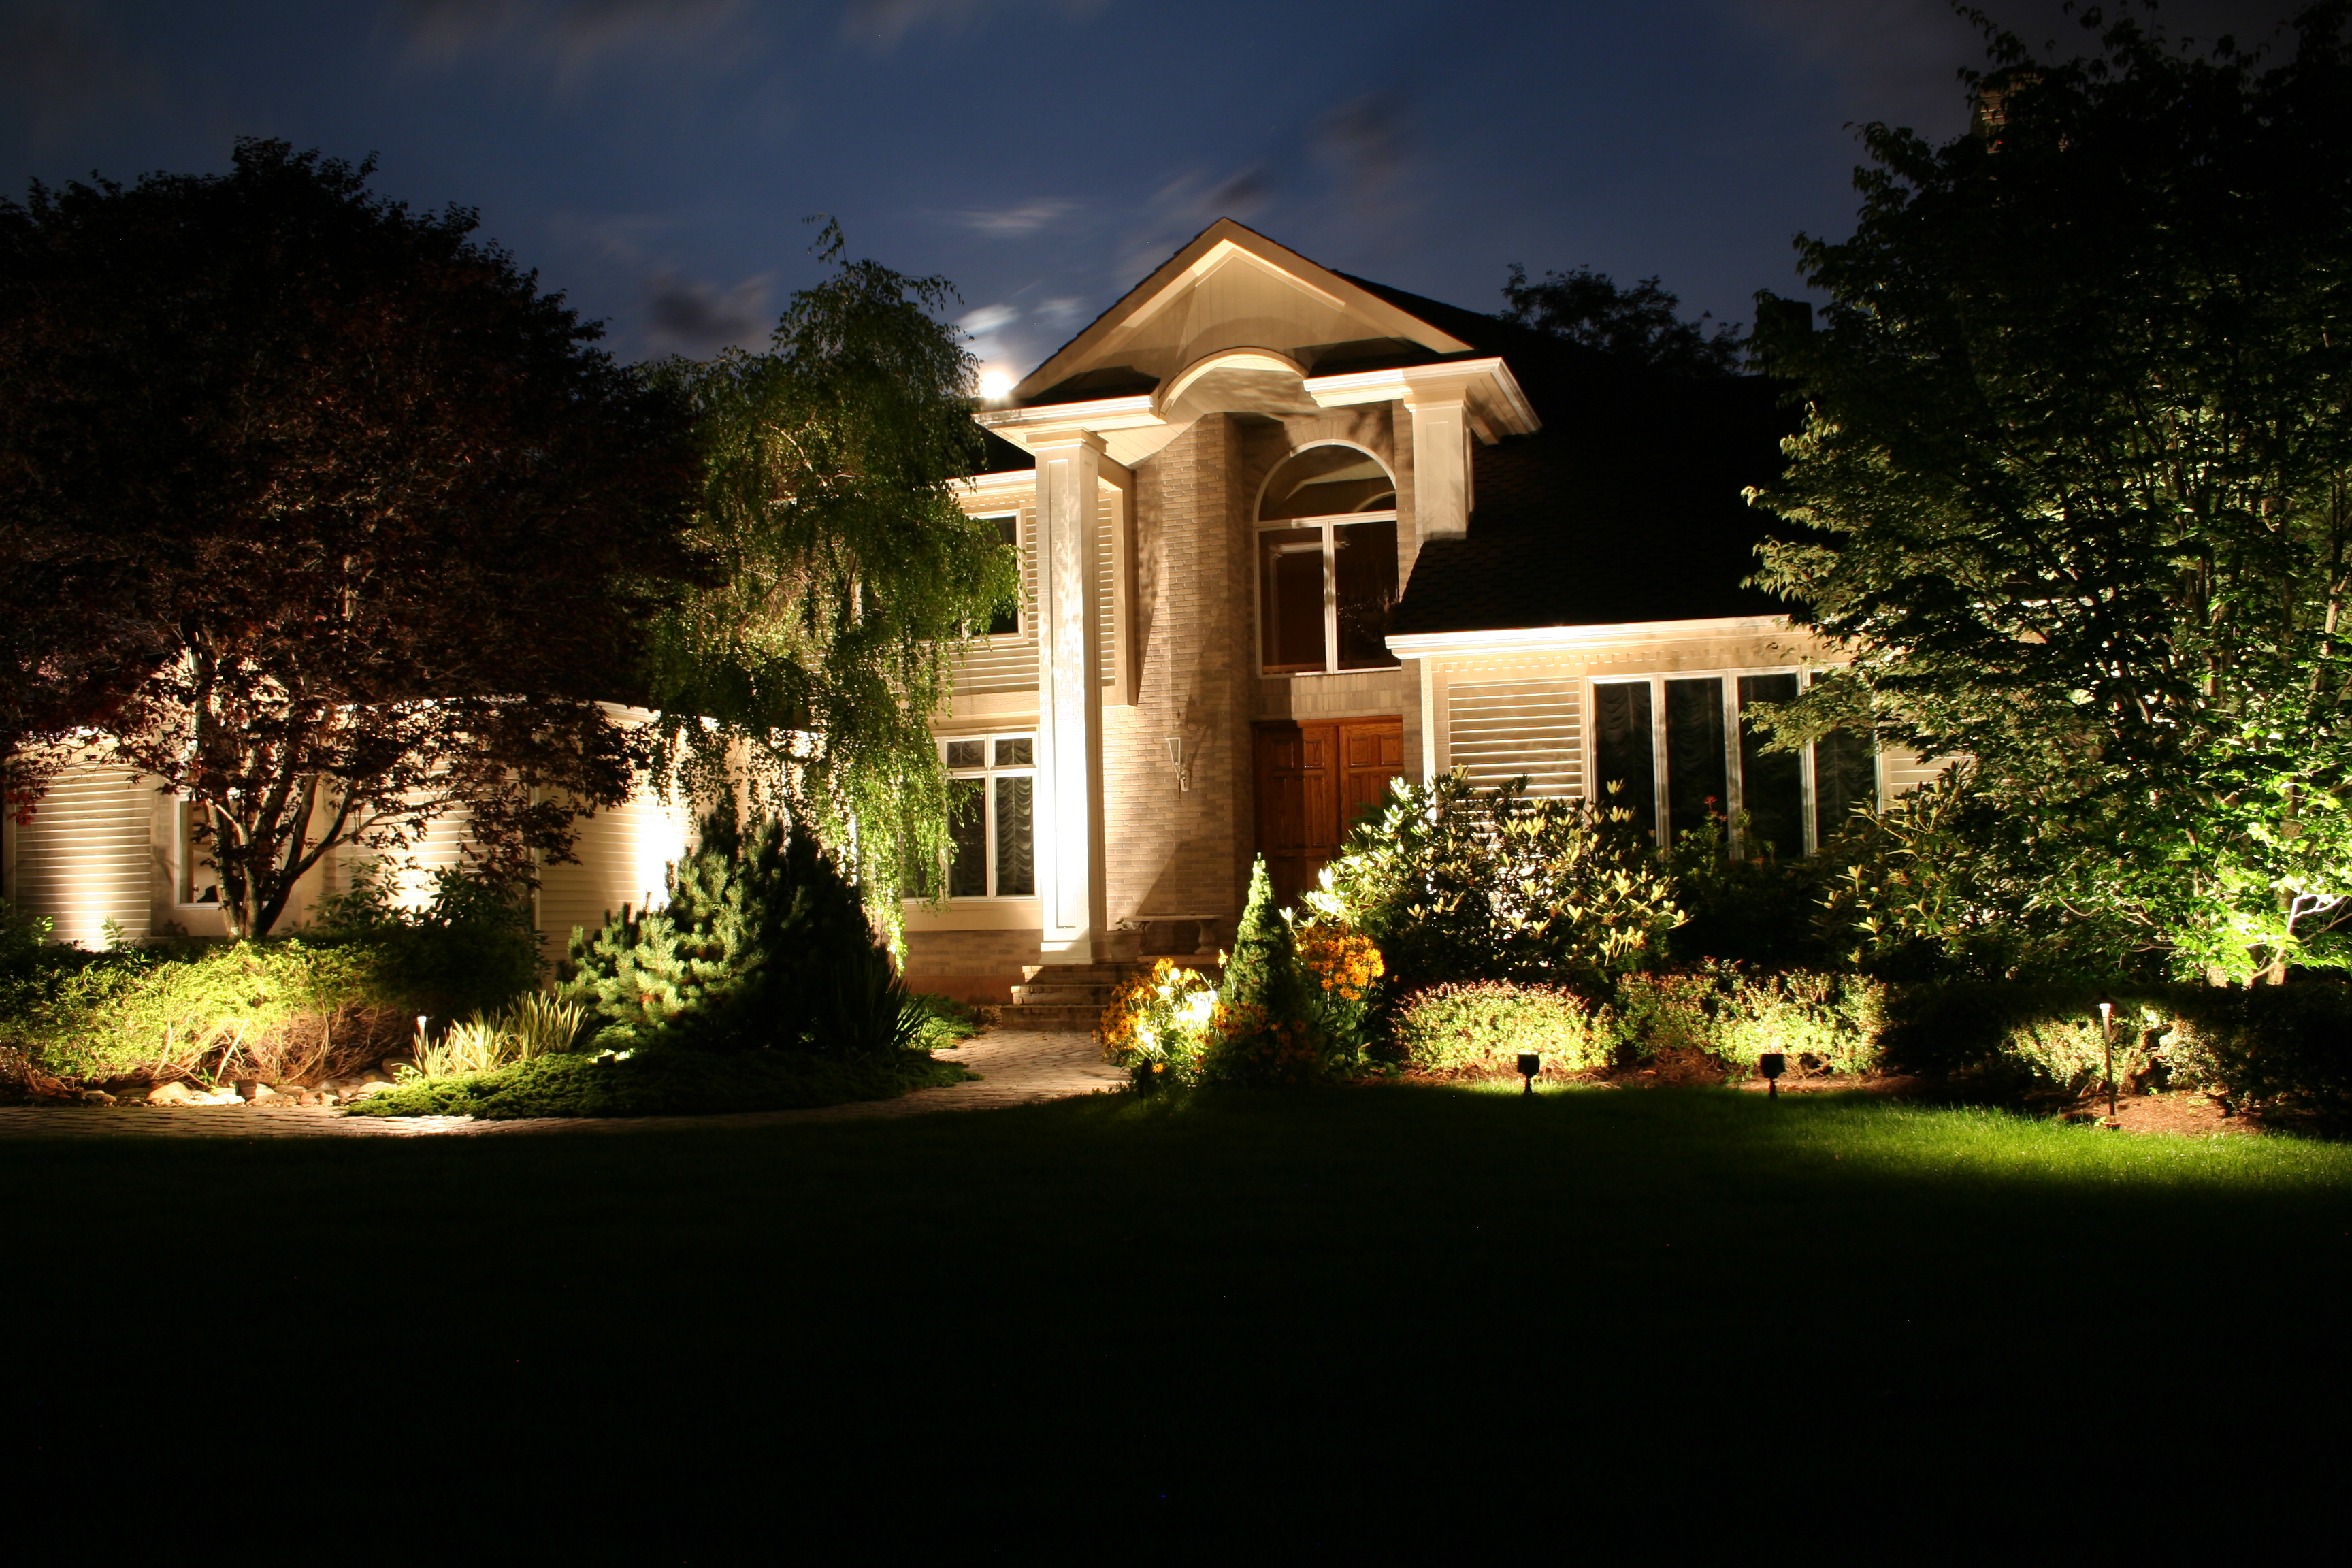 Preferred Properties Landscape Lighting Designer Shows Us